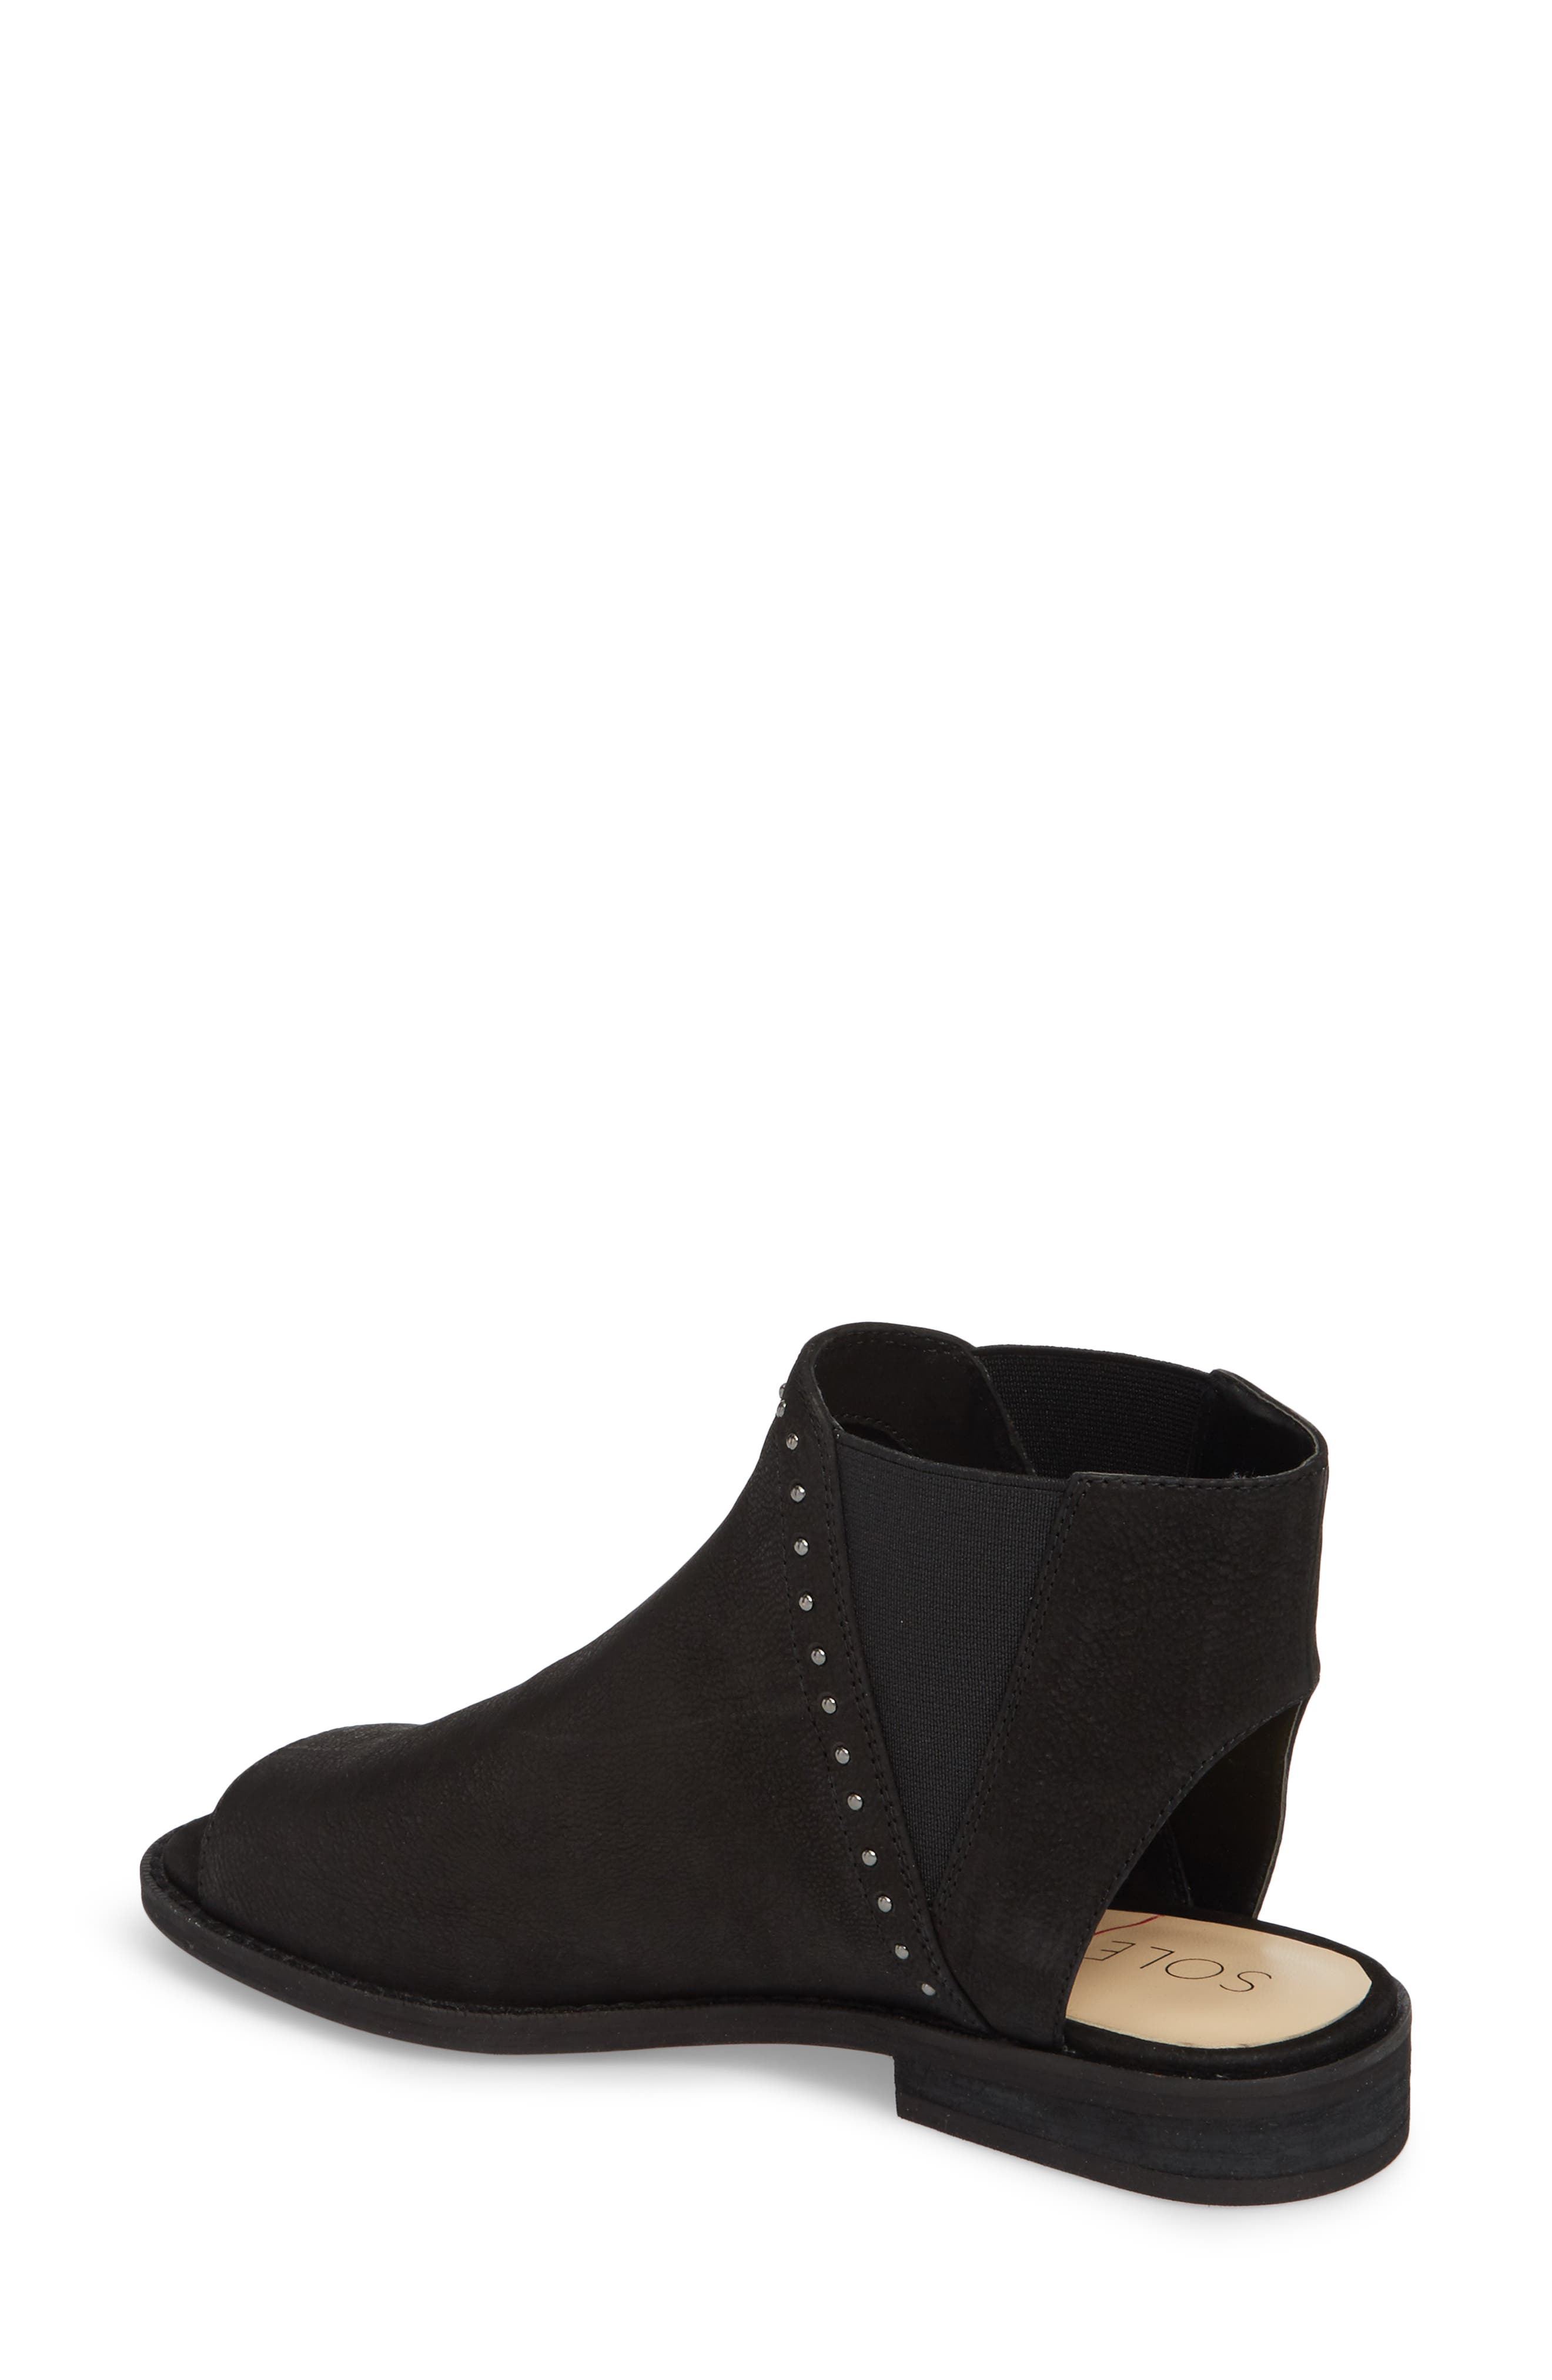 SOLE SOCIETY, Birty Bootie, Alternate thumbnail 2, color, BLACK